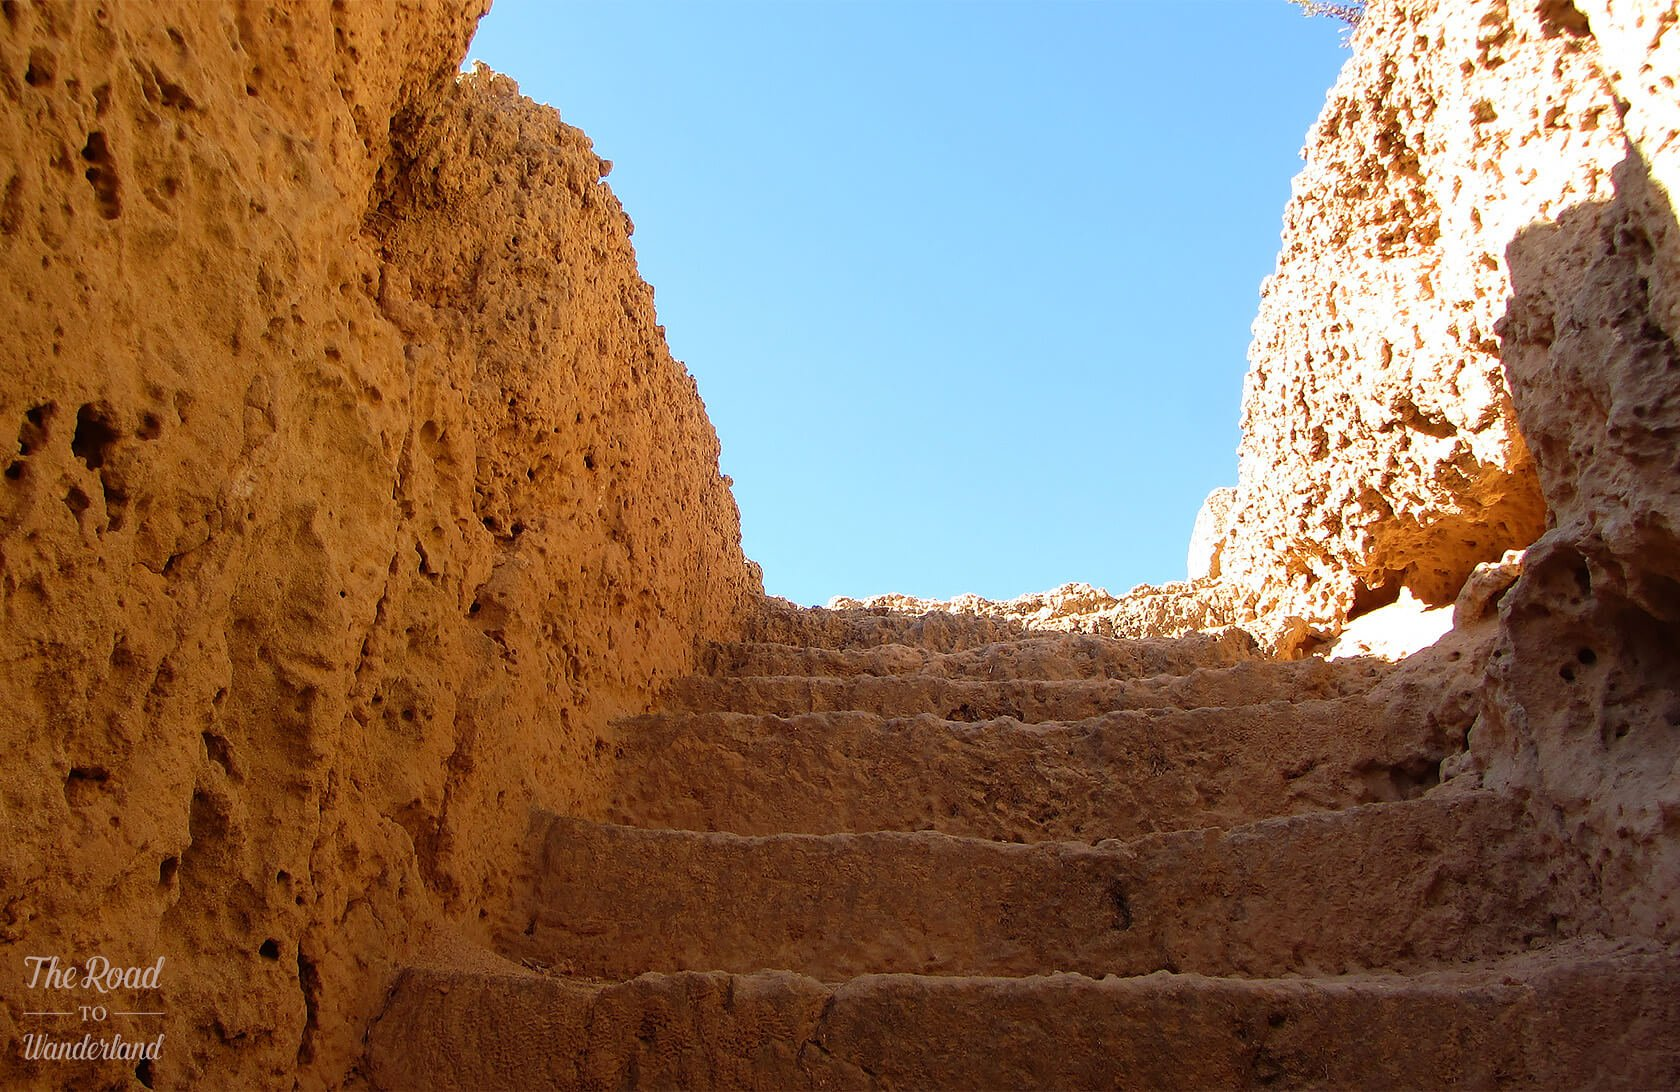 Looking up the stairs of a tomb, Tombs of the Kings, Paphos